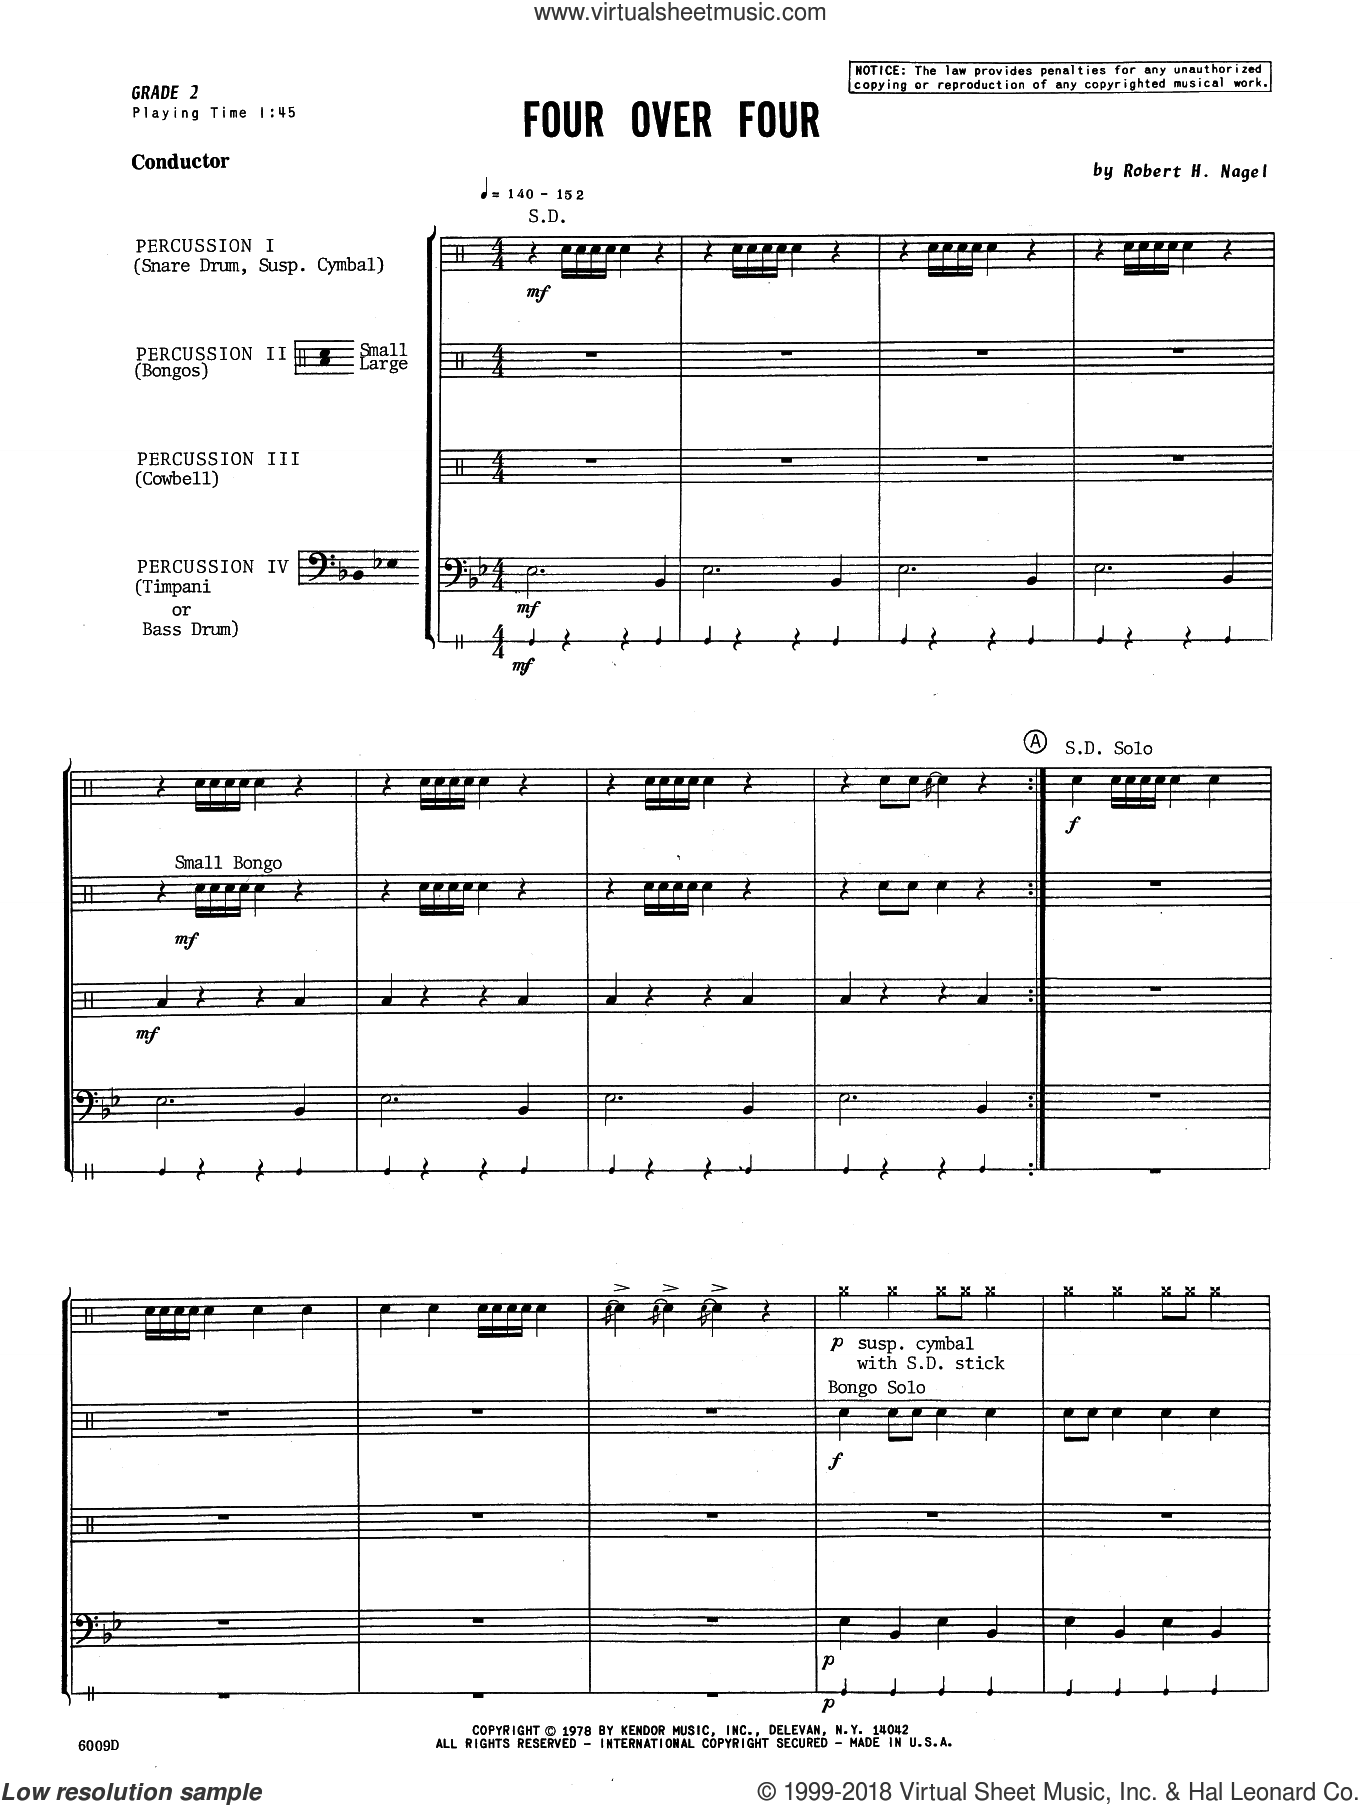 Four Over Four (COMPLETE) sheet music for percussions by Robert H. Nagel, intermediate skill level